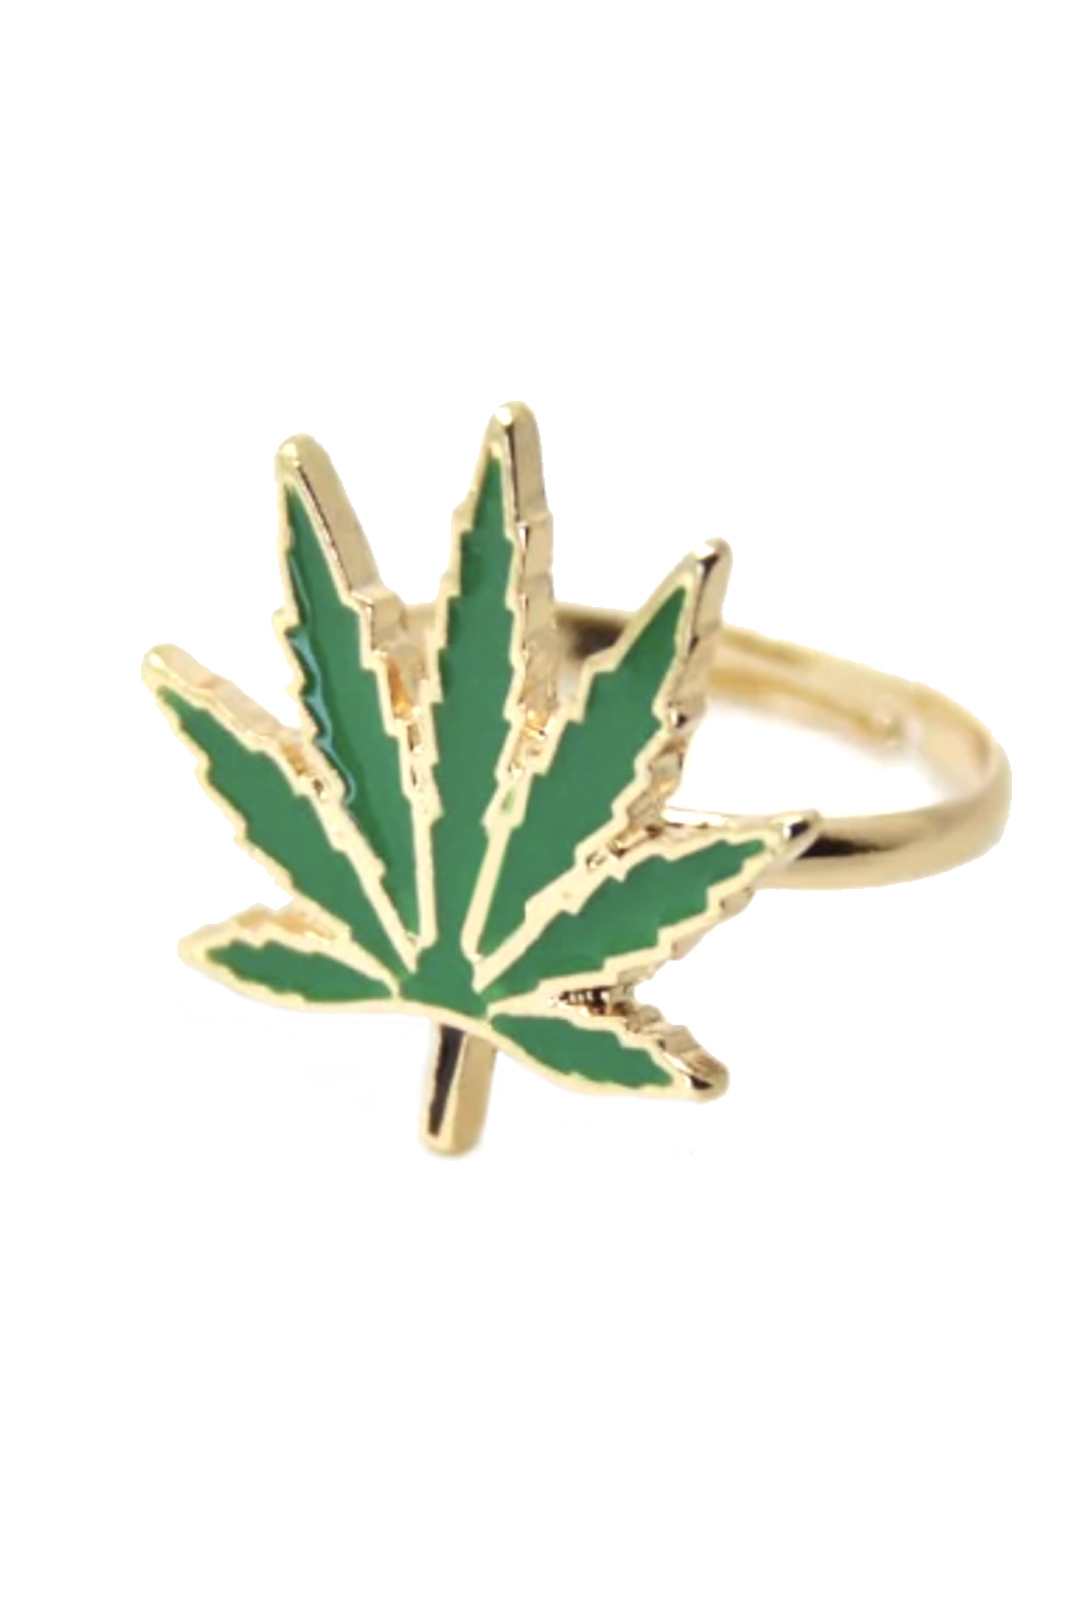 just get high_cannabis ring_gold and green